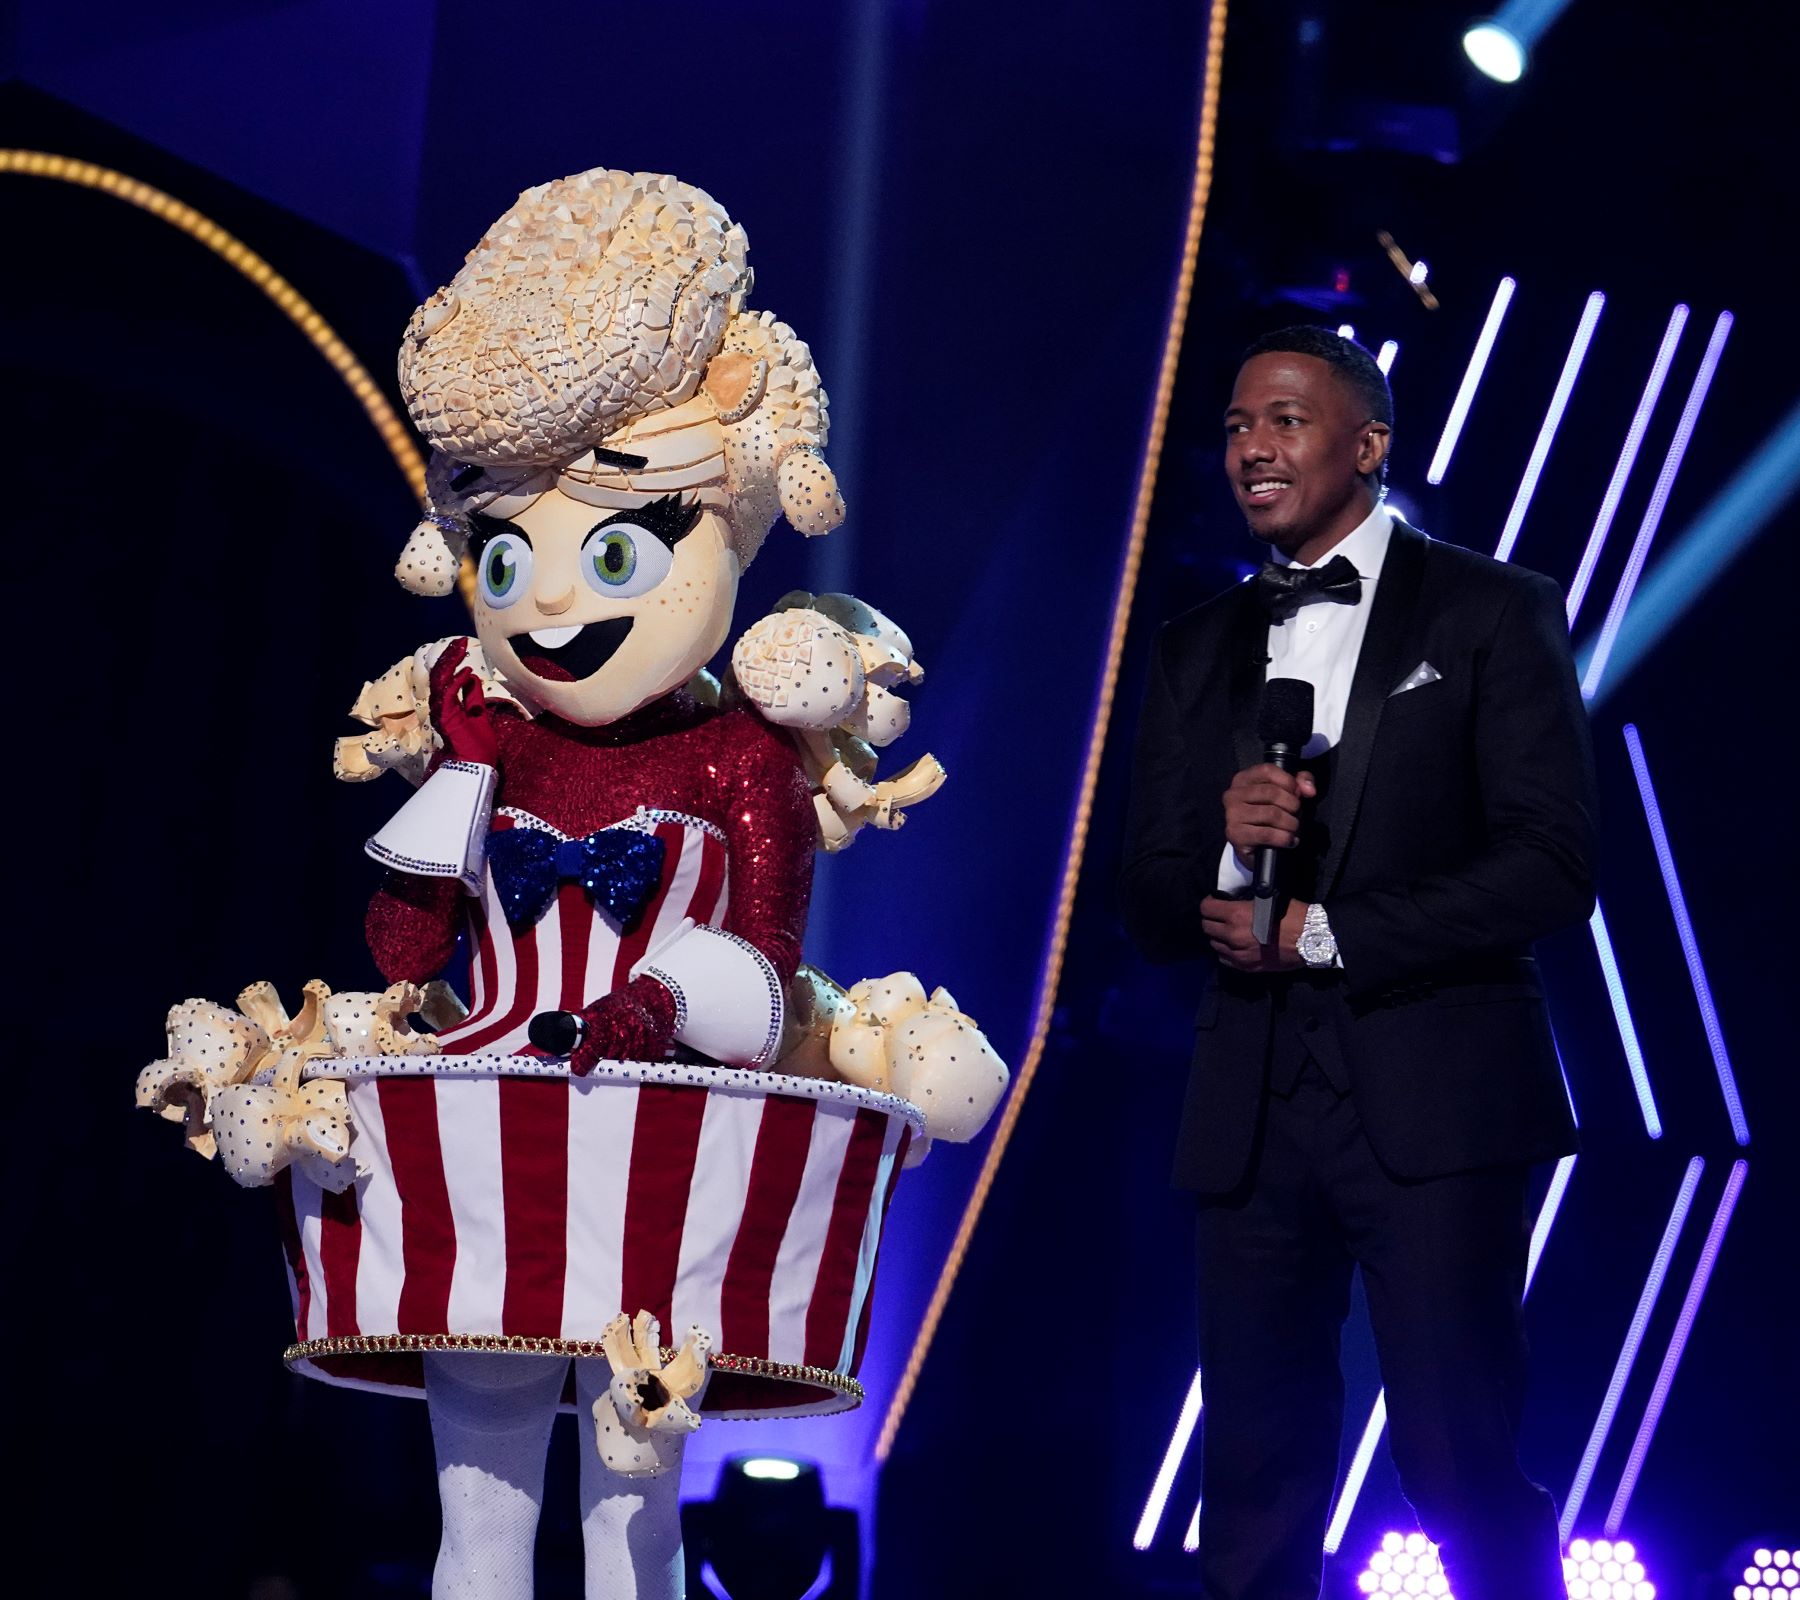 Nick Cannon and the Popcorn on 'The Masked Singer' Season 4